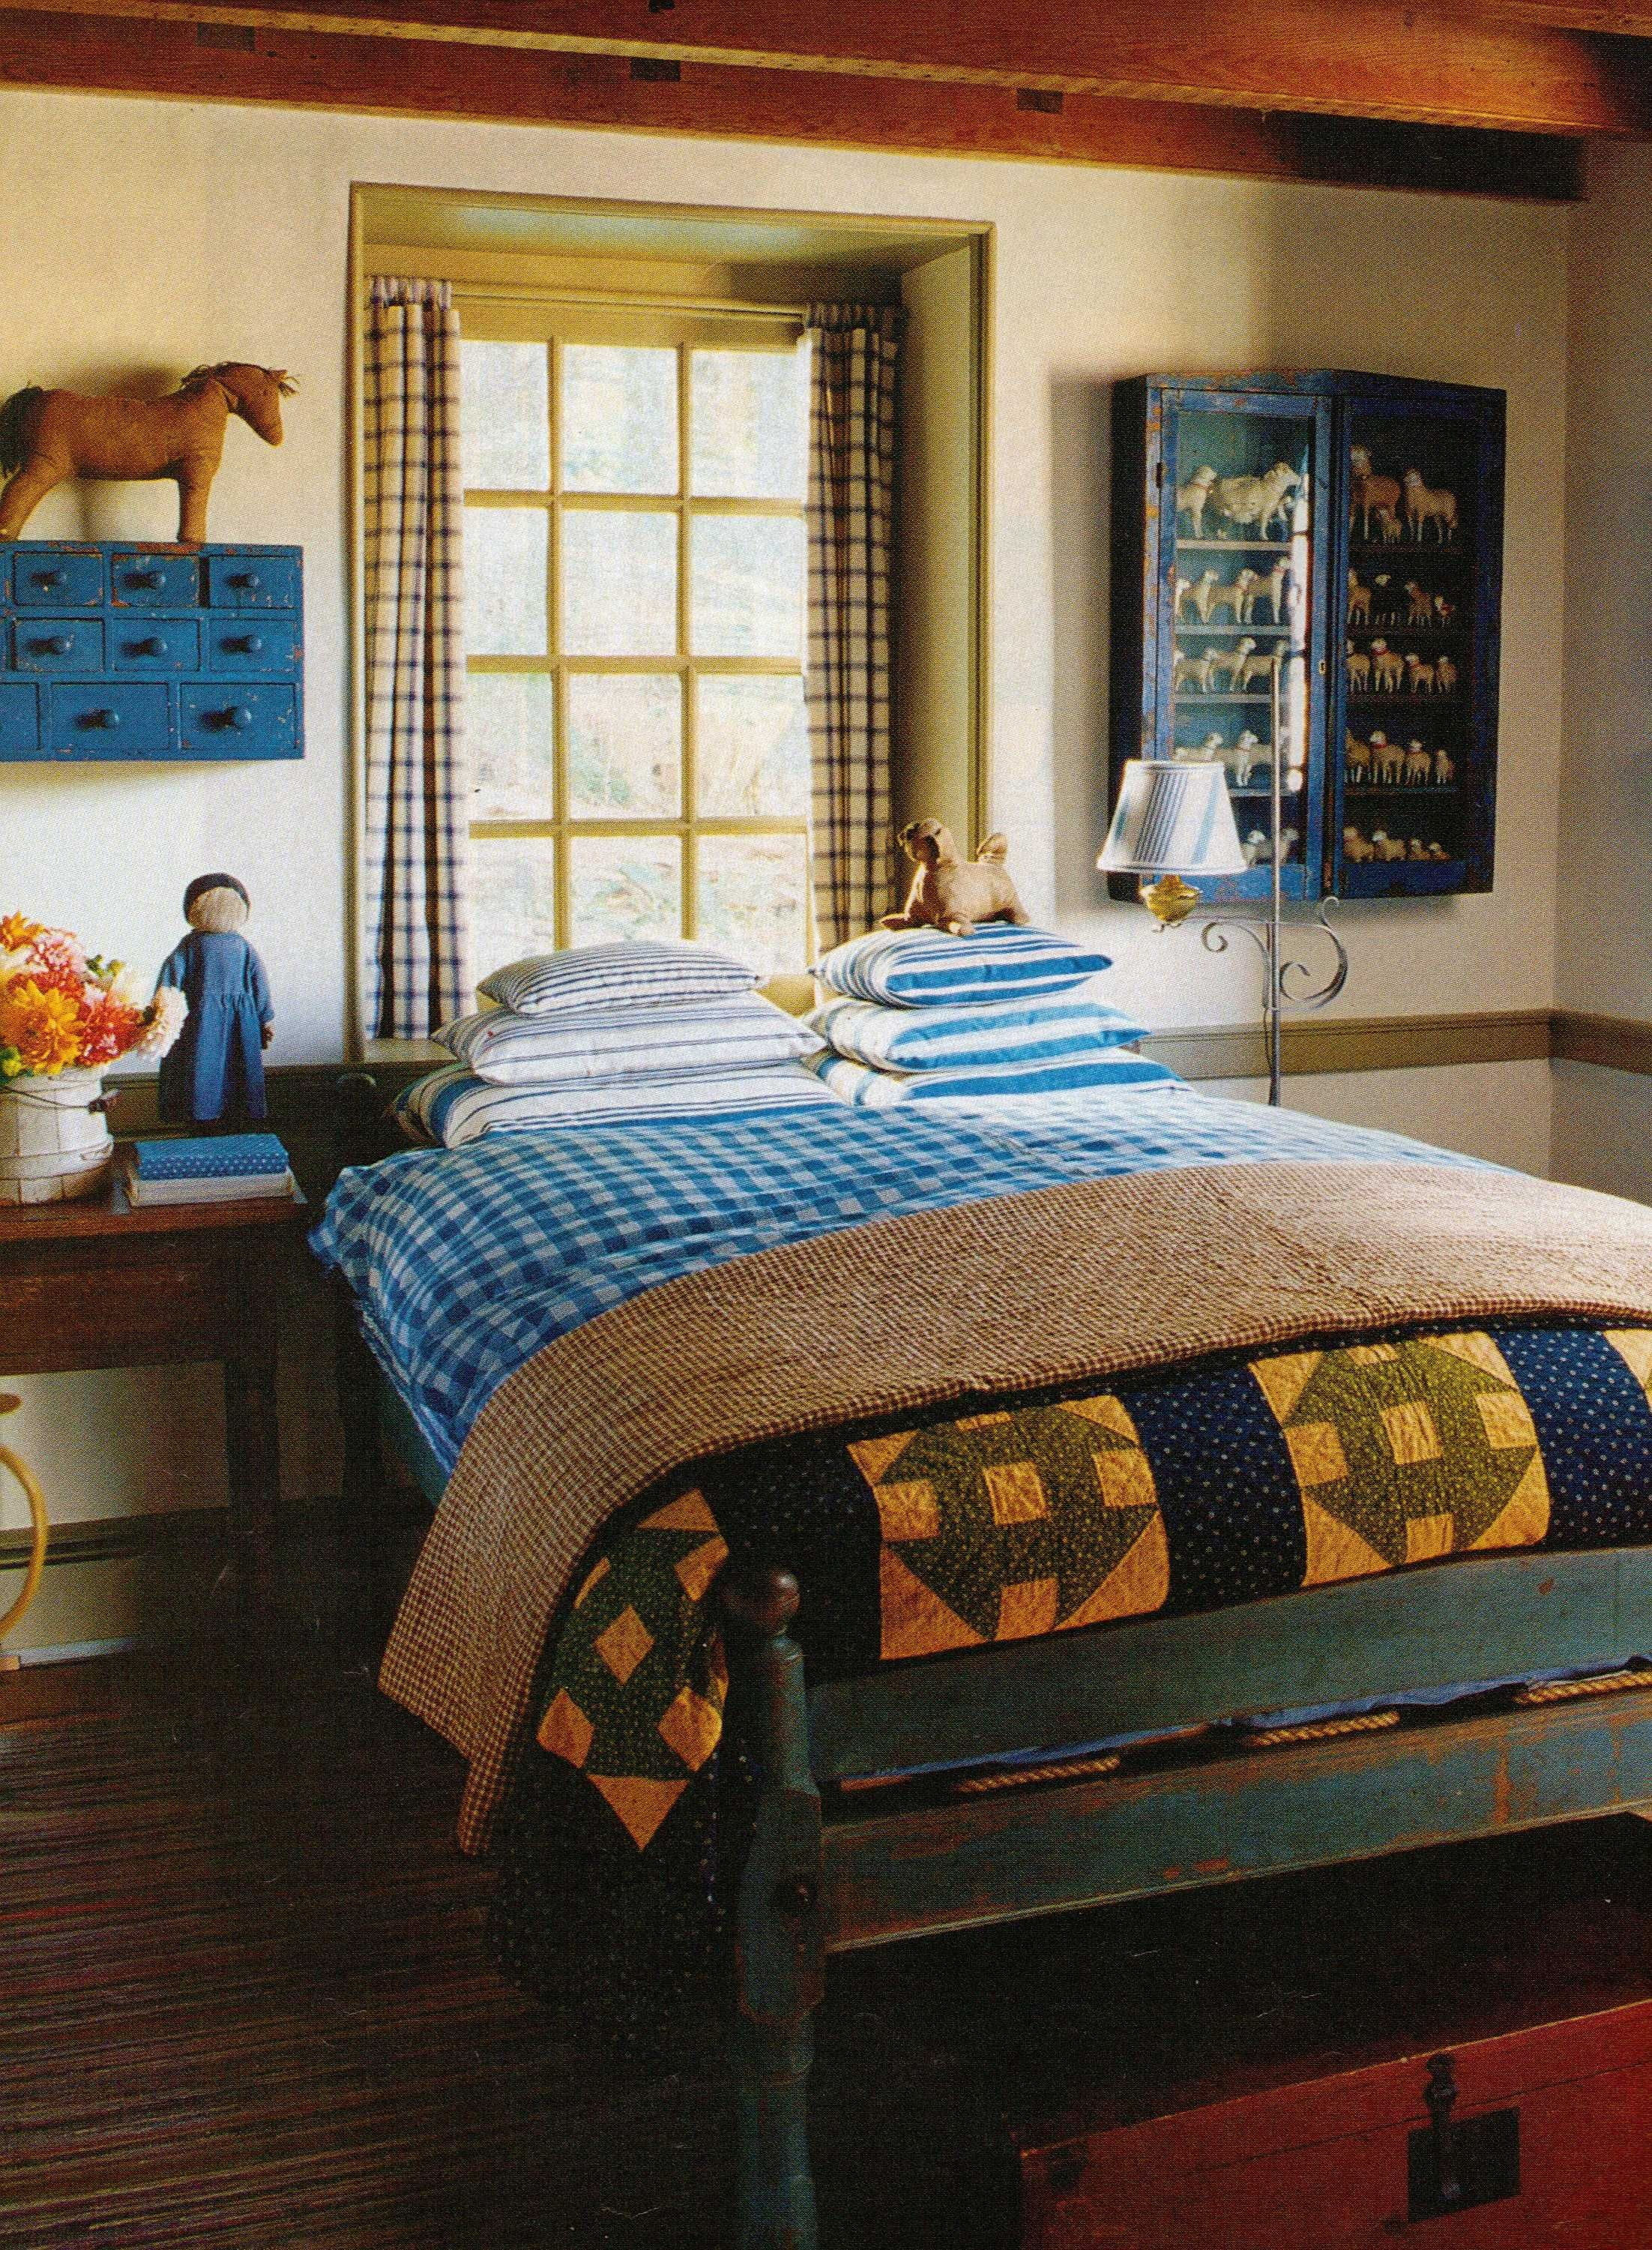 cheap primitive country bedroom decorating ideas | Prim Bedroom...old quilts & prim sheep collection on the ...